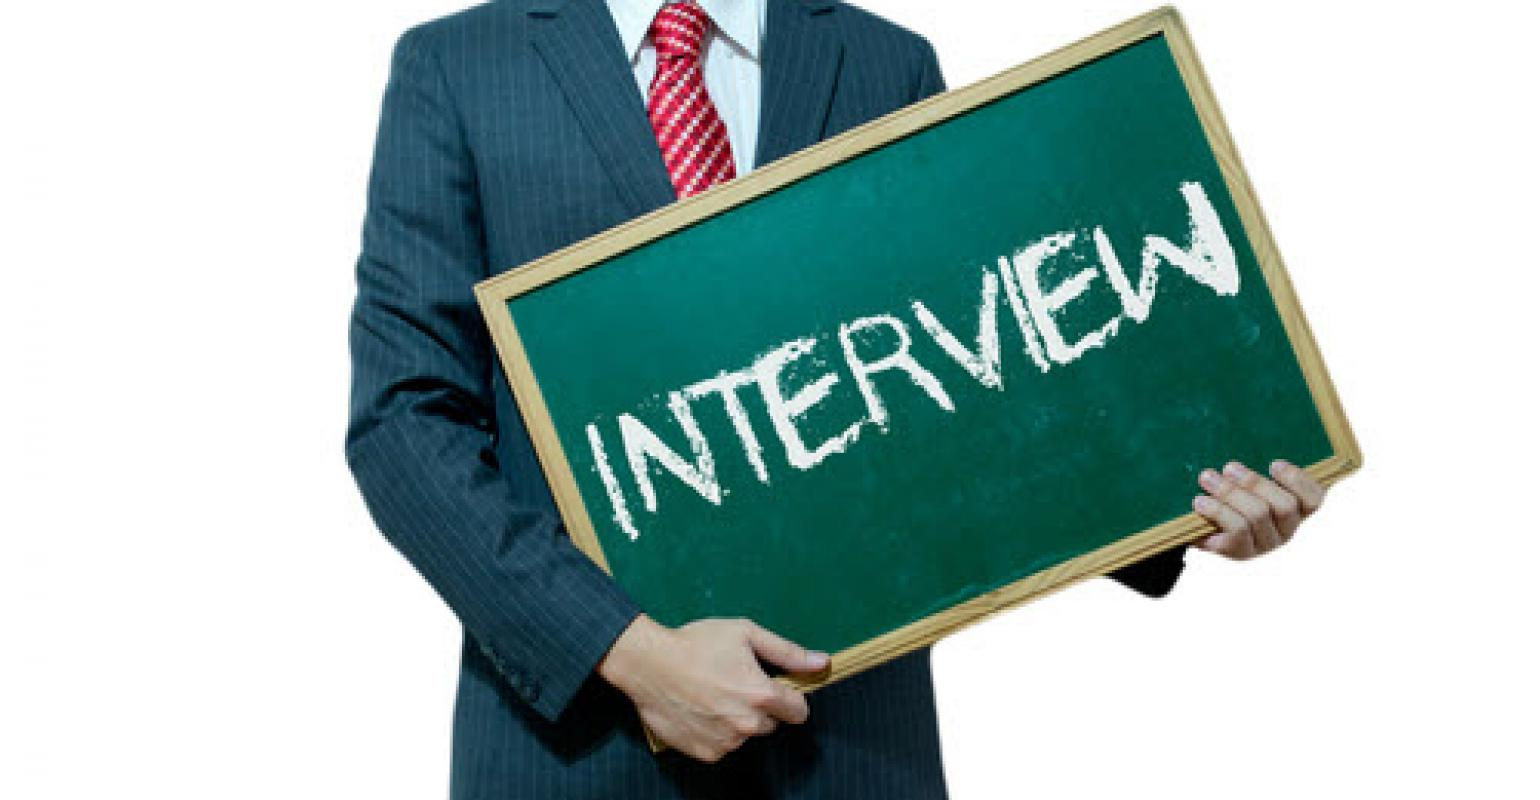 interview questions and answers what are your strengths interview questions and answers what to ask after interview